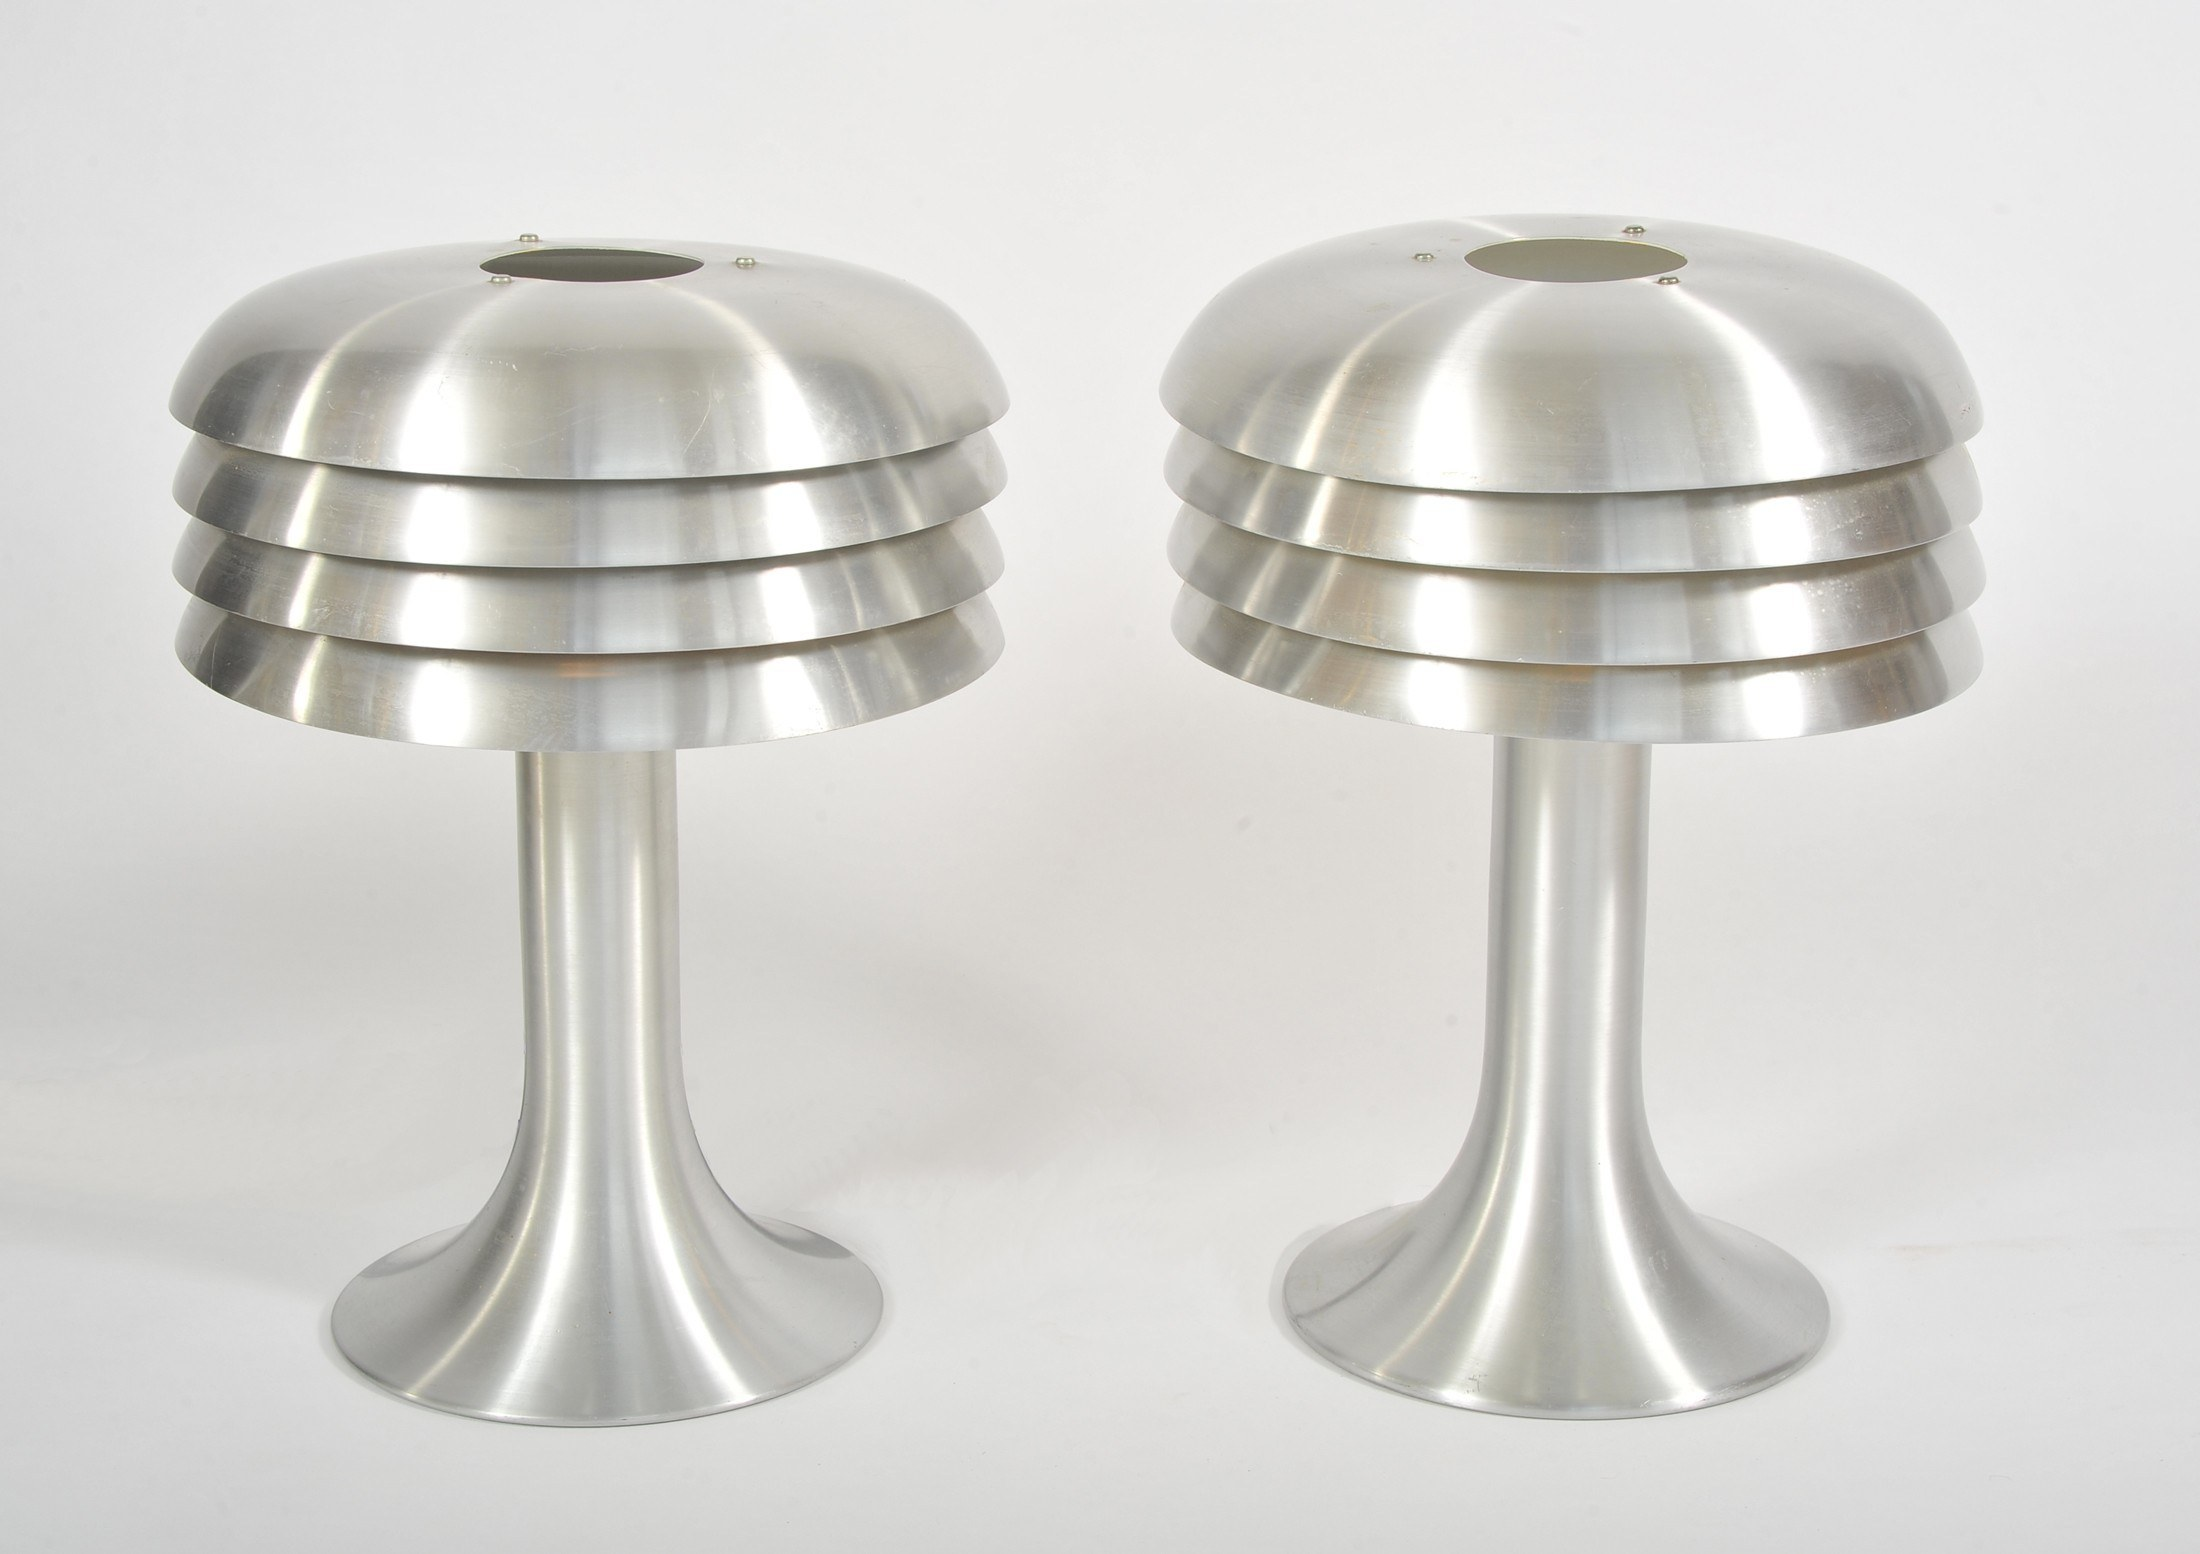 The image for Valerie Wade Lt663 Pair 1960S Table Lamps Hans Agne Jakobsson 02